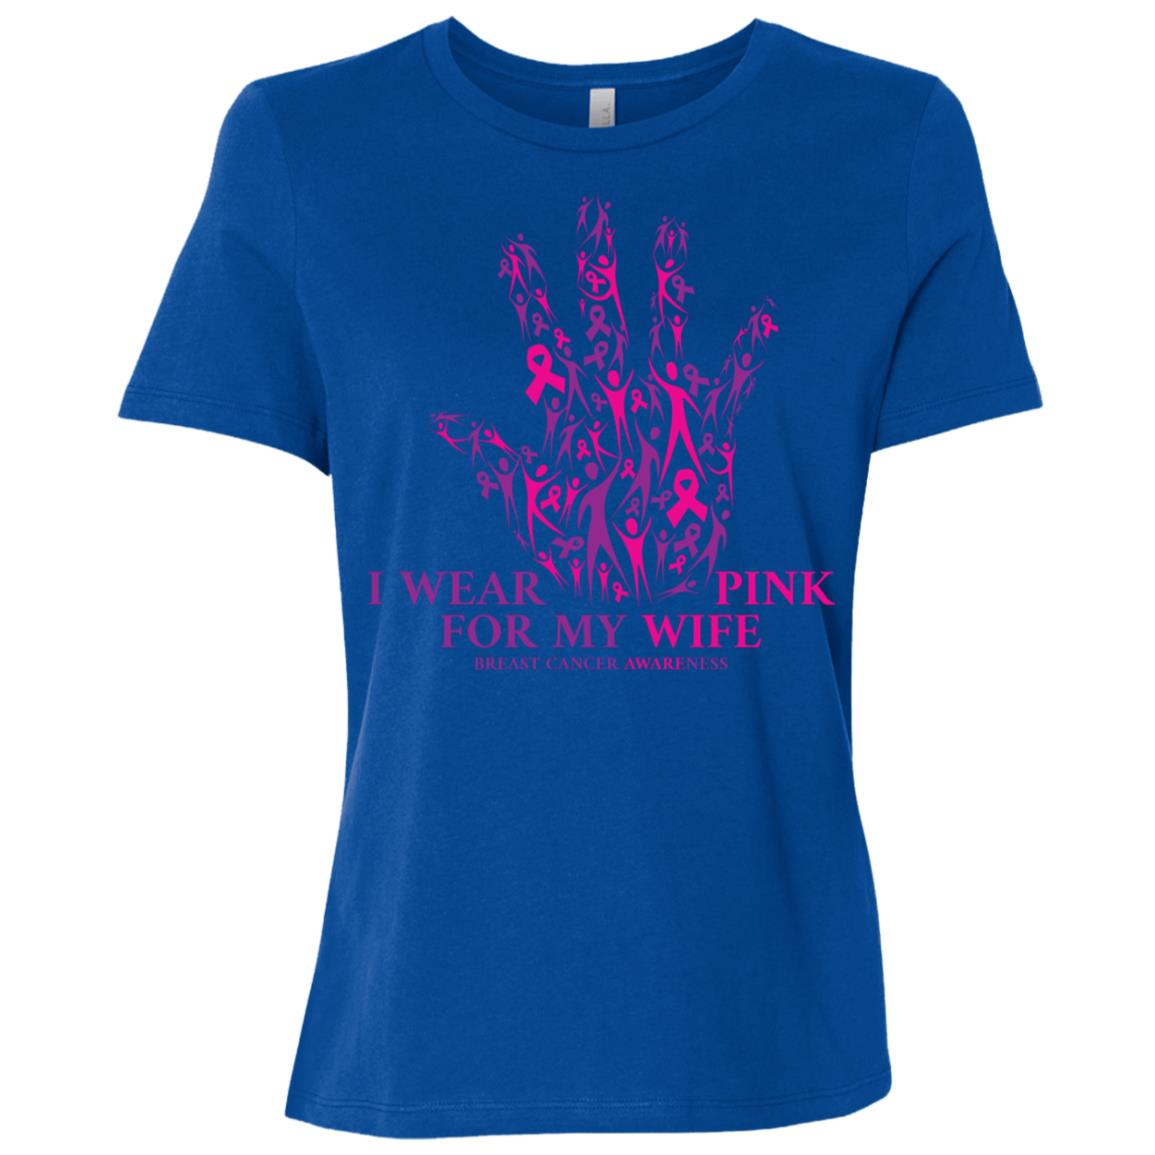 I Wear Pink For My Wife Breast Cancer Awareness Women Short Sleeve T-Shirt